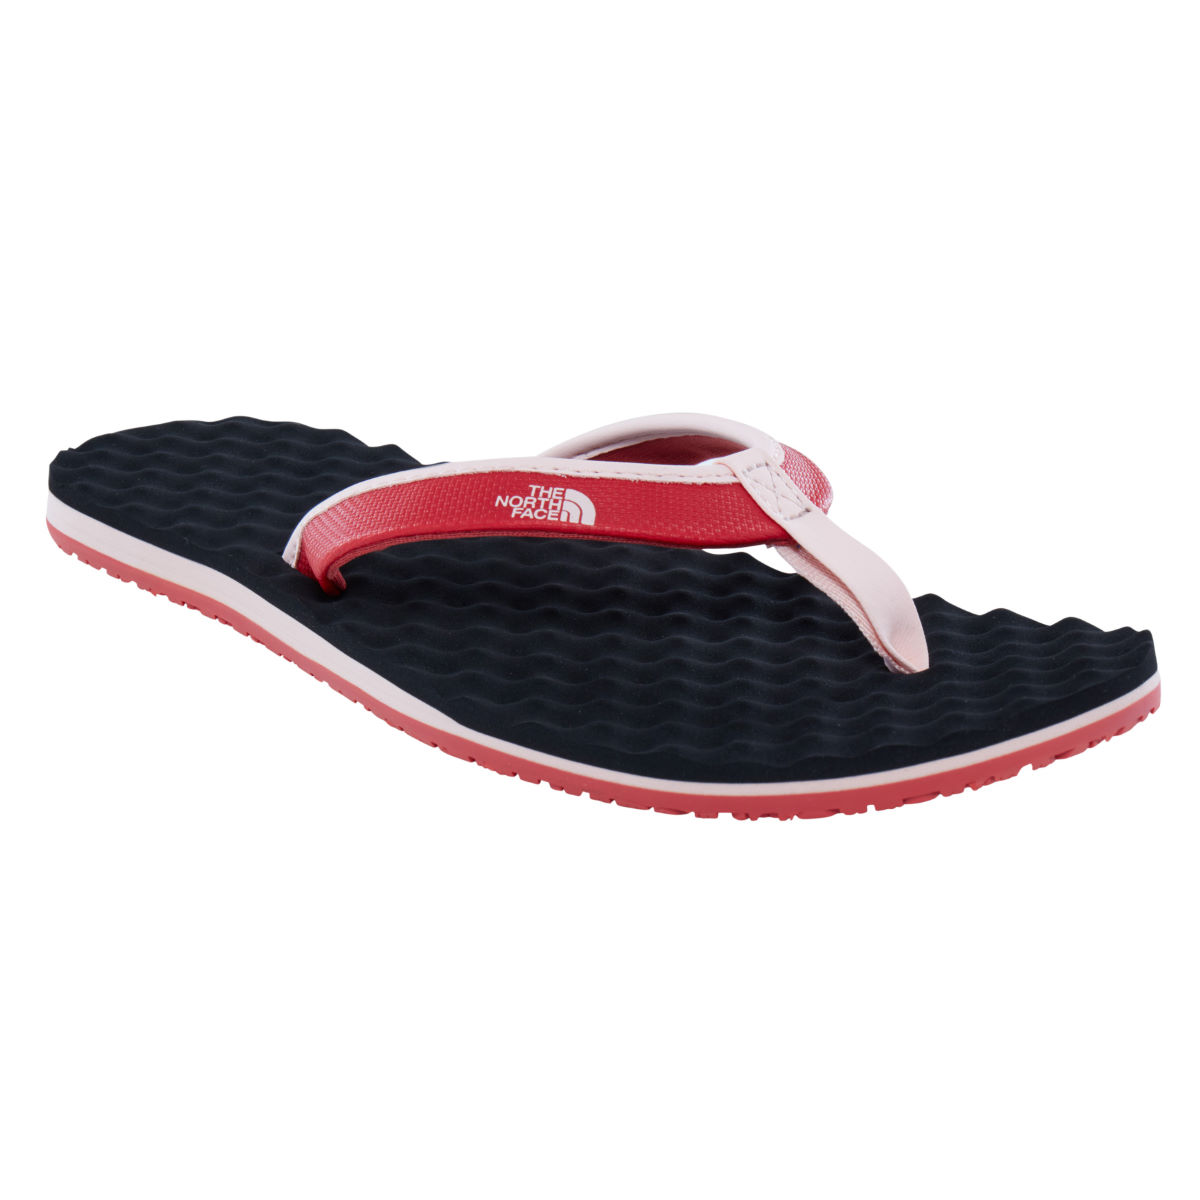 The North Face Women's Base Camp Mini Flip Flop   Flip Flops